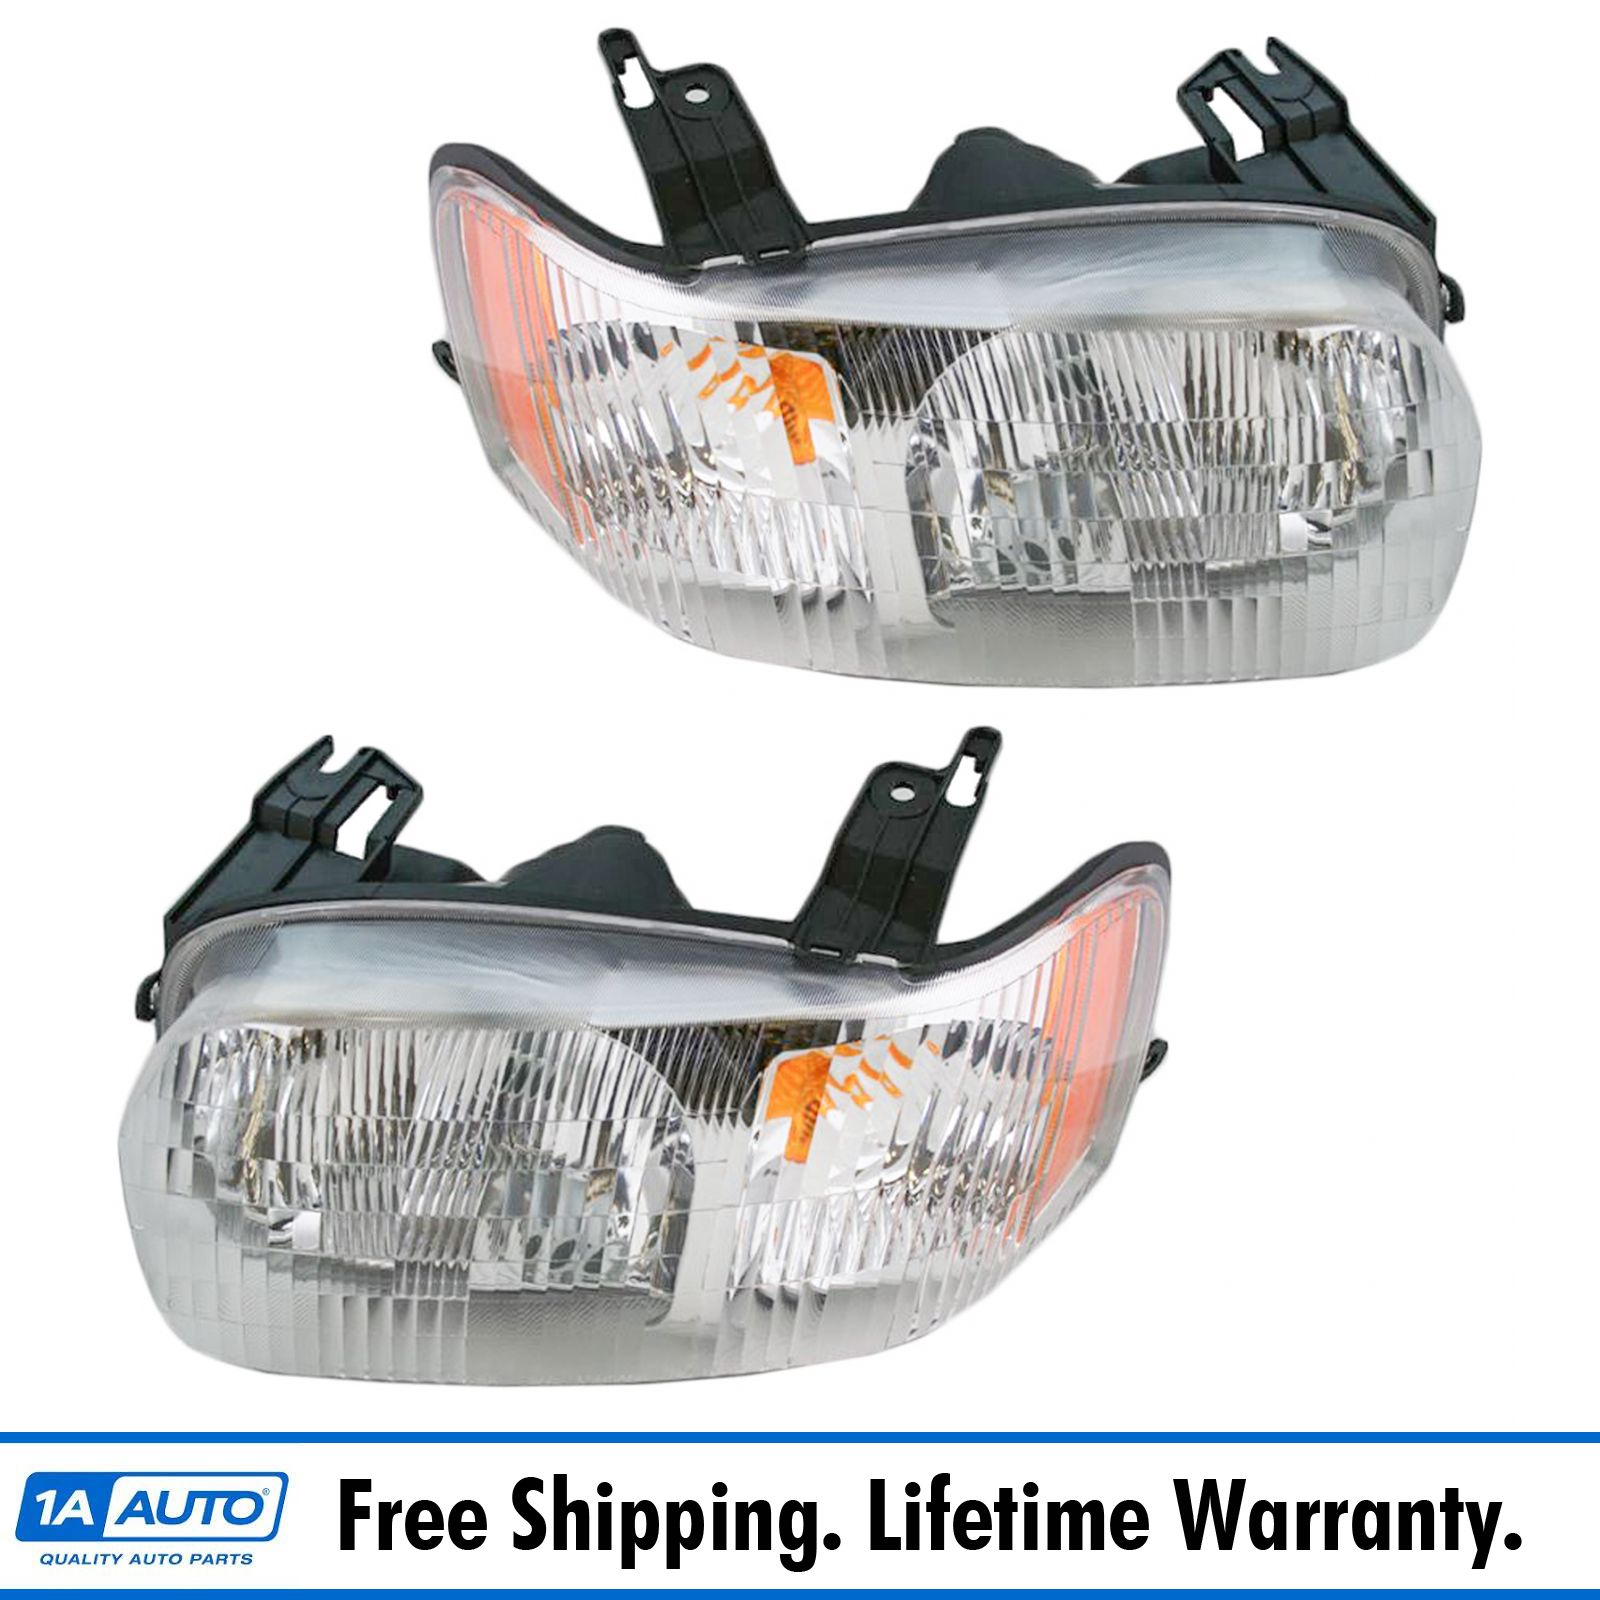 NEW LH /& RH HEAD LAMP ASSEMBLY FOR 2001-2004 FORD ESCAPE FO2518103 FO2519103